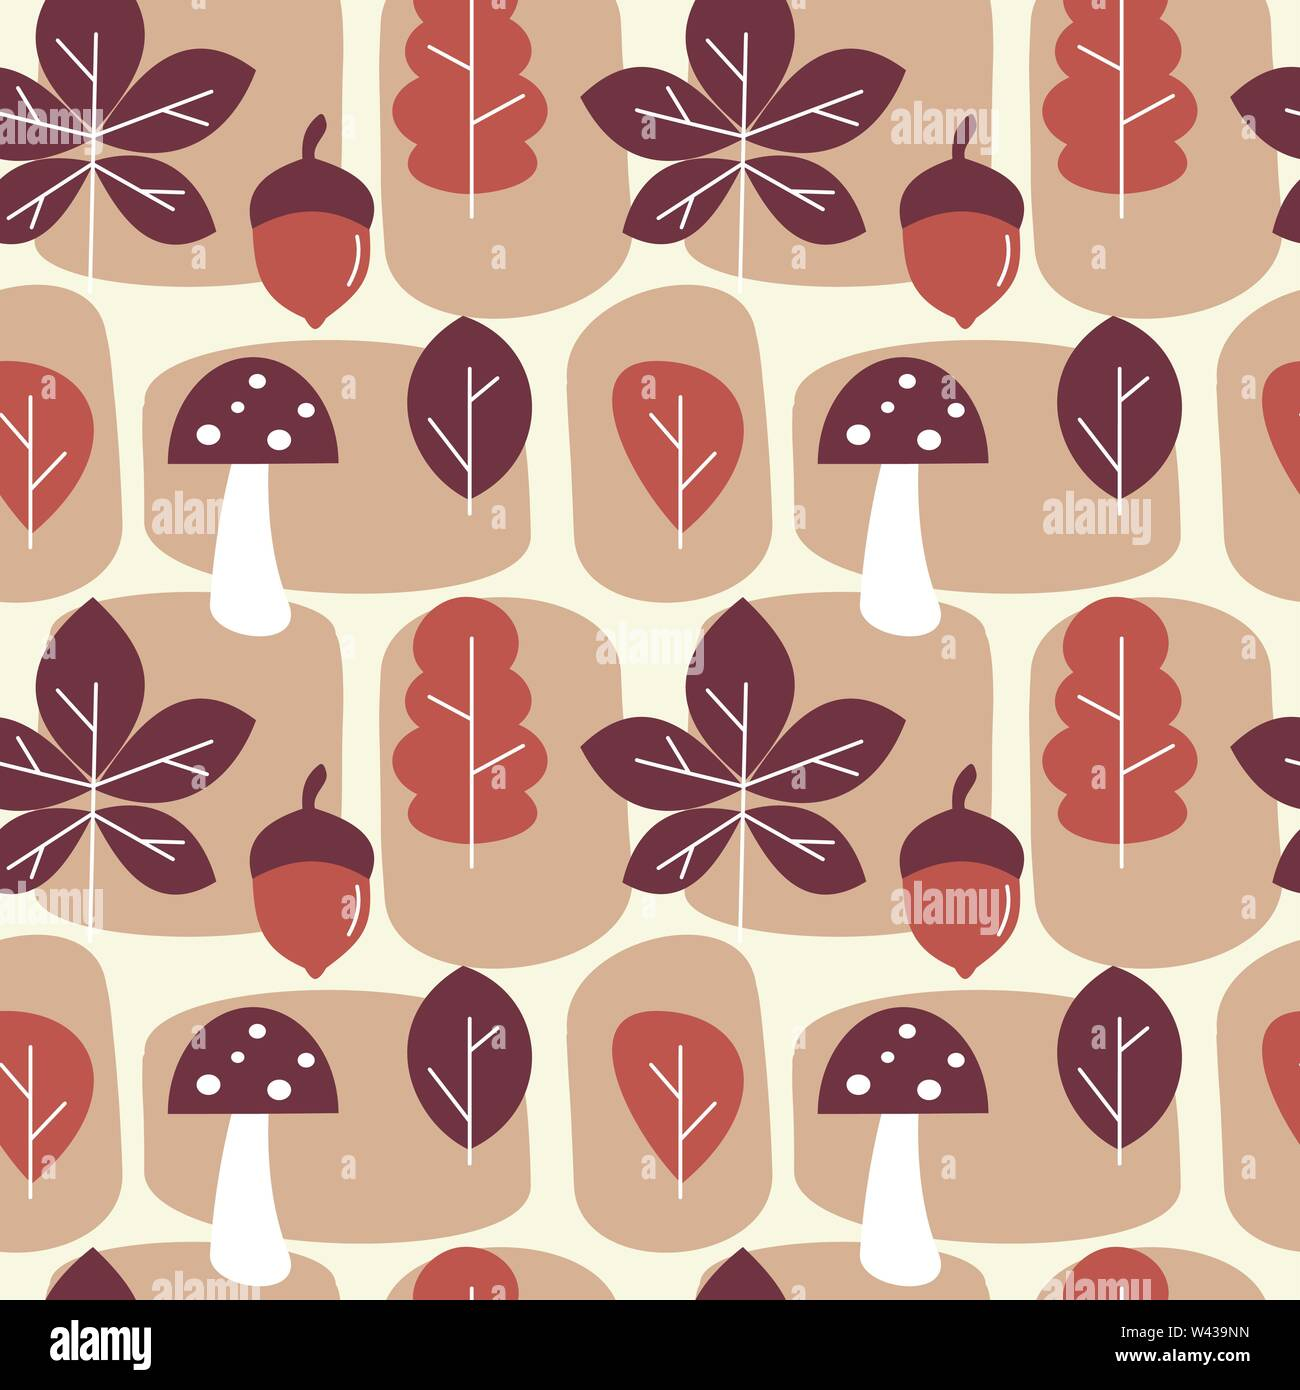 cute autumn fall seamless vector pattern background illustration with leaves, mushroom, abstract elements and acorns - Stock Image